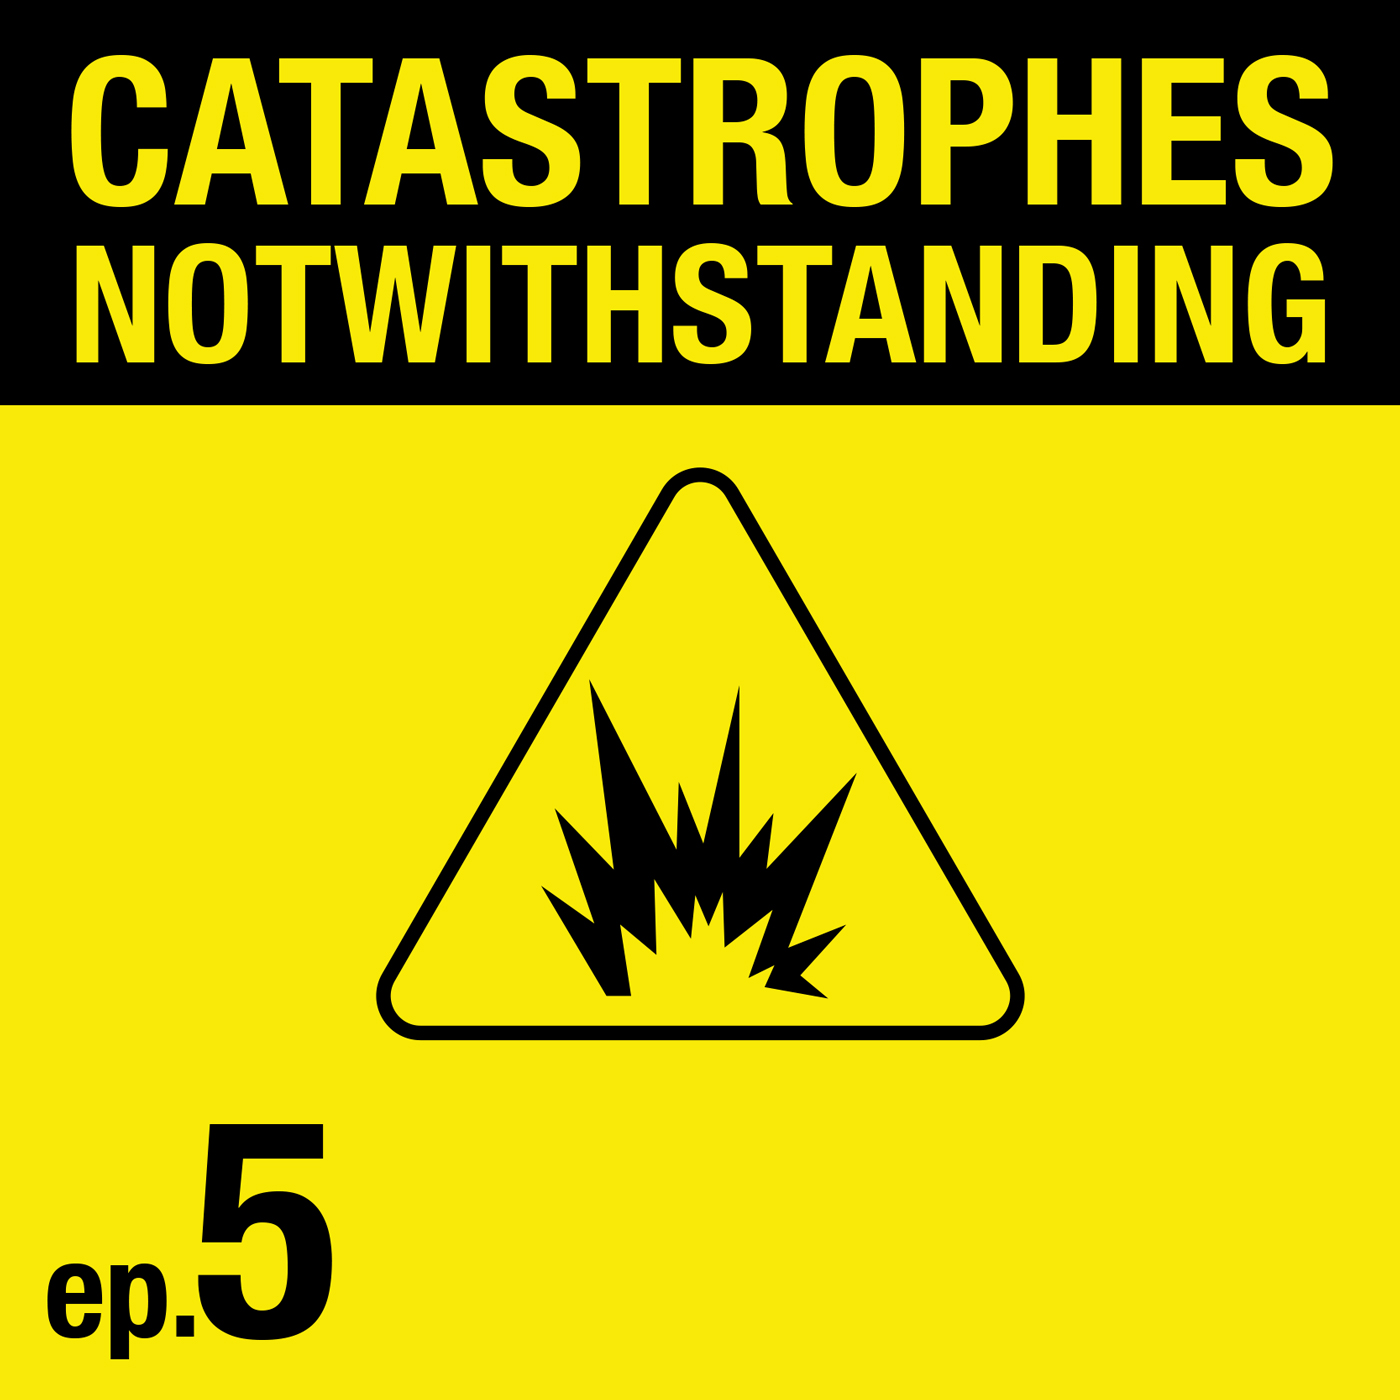 Cover Image of Catastrophes Notwithstanding Episode 5